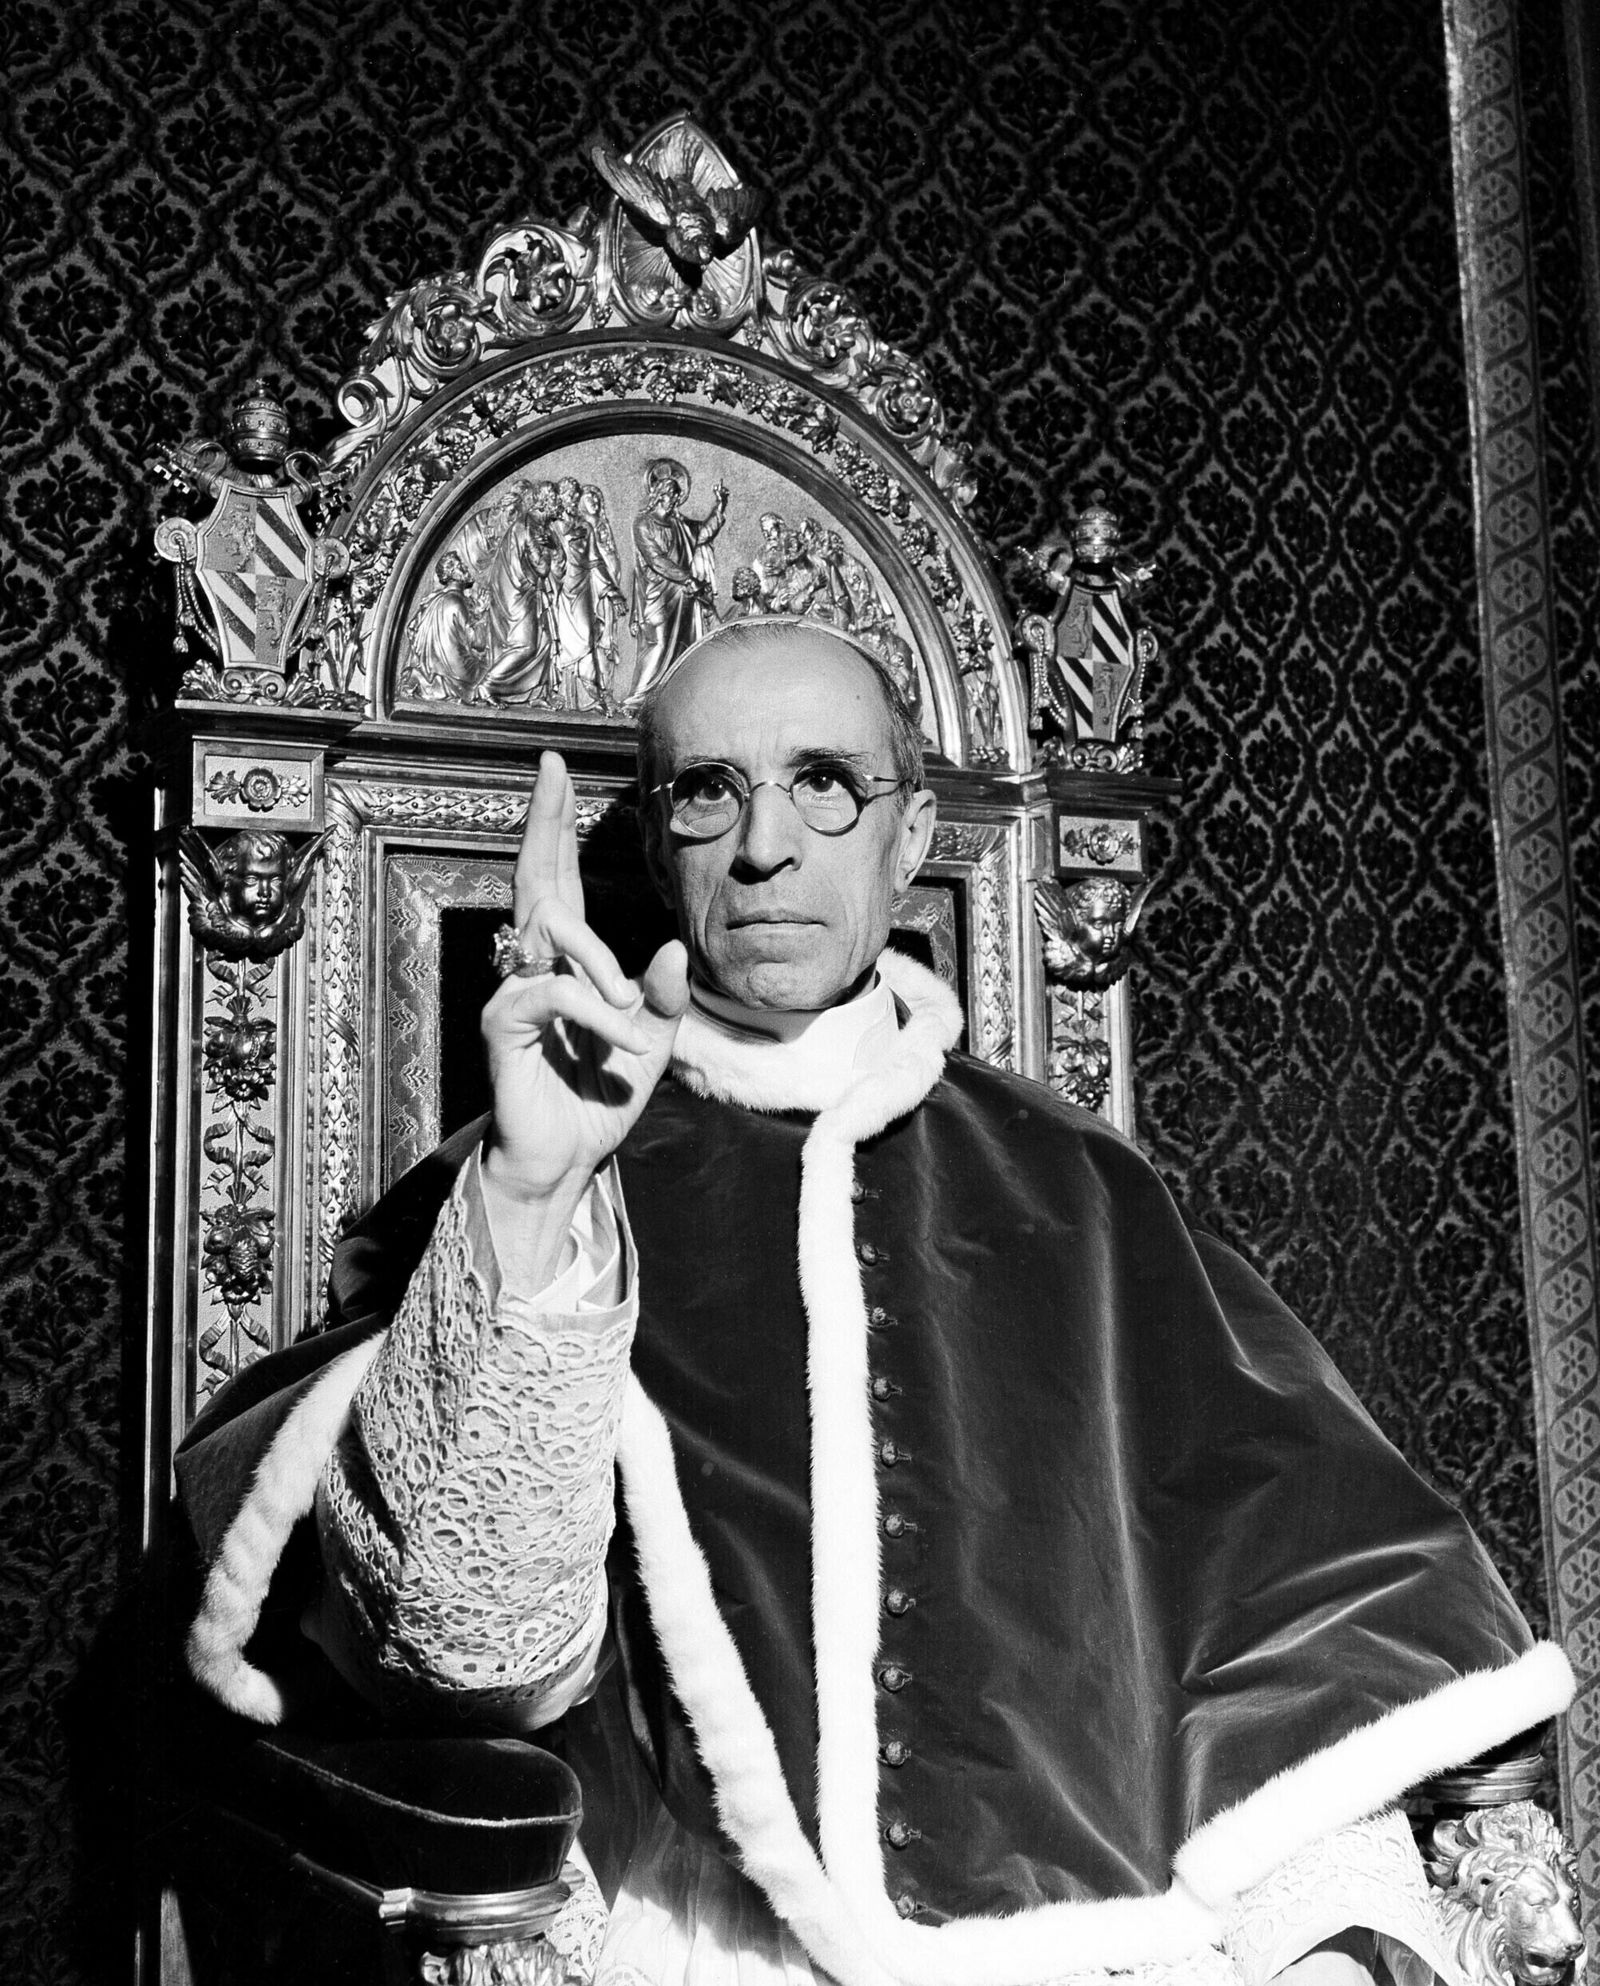 FILE - In this file photo dated Sept. 1945, Pope Pius XII, wearing the ring of St. Peter, raises his right hand in a papal blessing at the Vatican. The Vatican's chief librarian and archivists said Thursday, Feb. 20, 2020 that all researchers _ regardless of nationality, faith and ideology _ were welcome to request access to the soon-to-open Vatican's apostolic library on Pope Pius XII starting March 2.  (AP Photo, File)